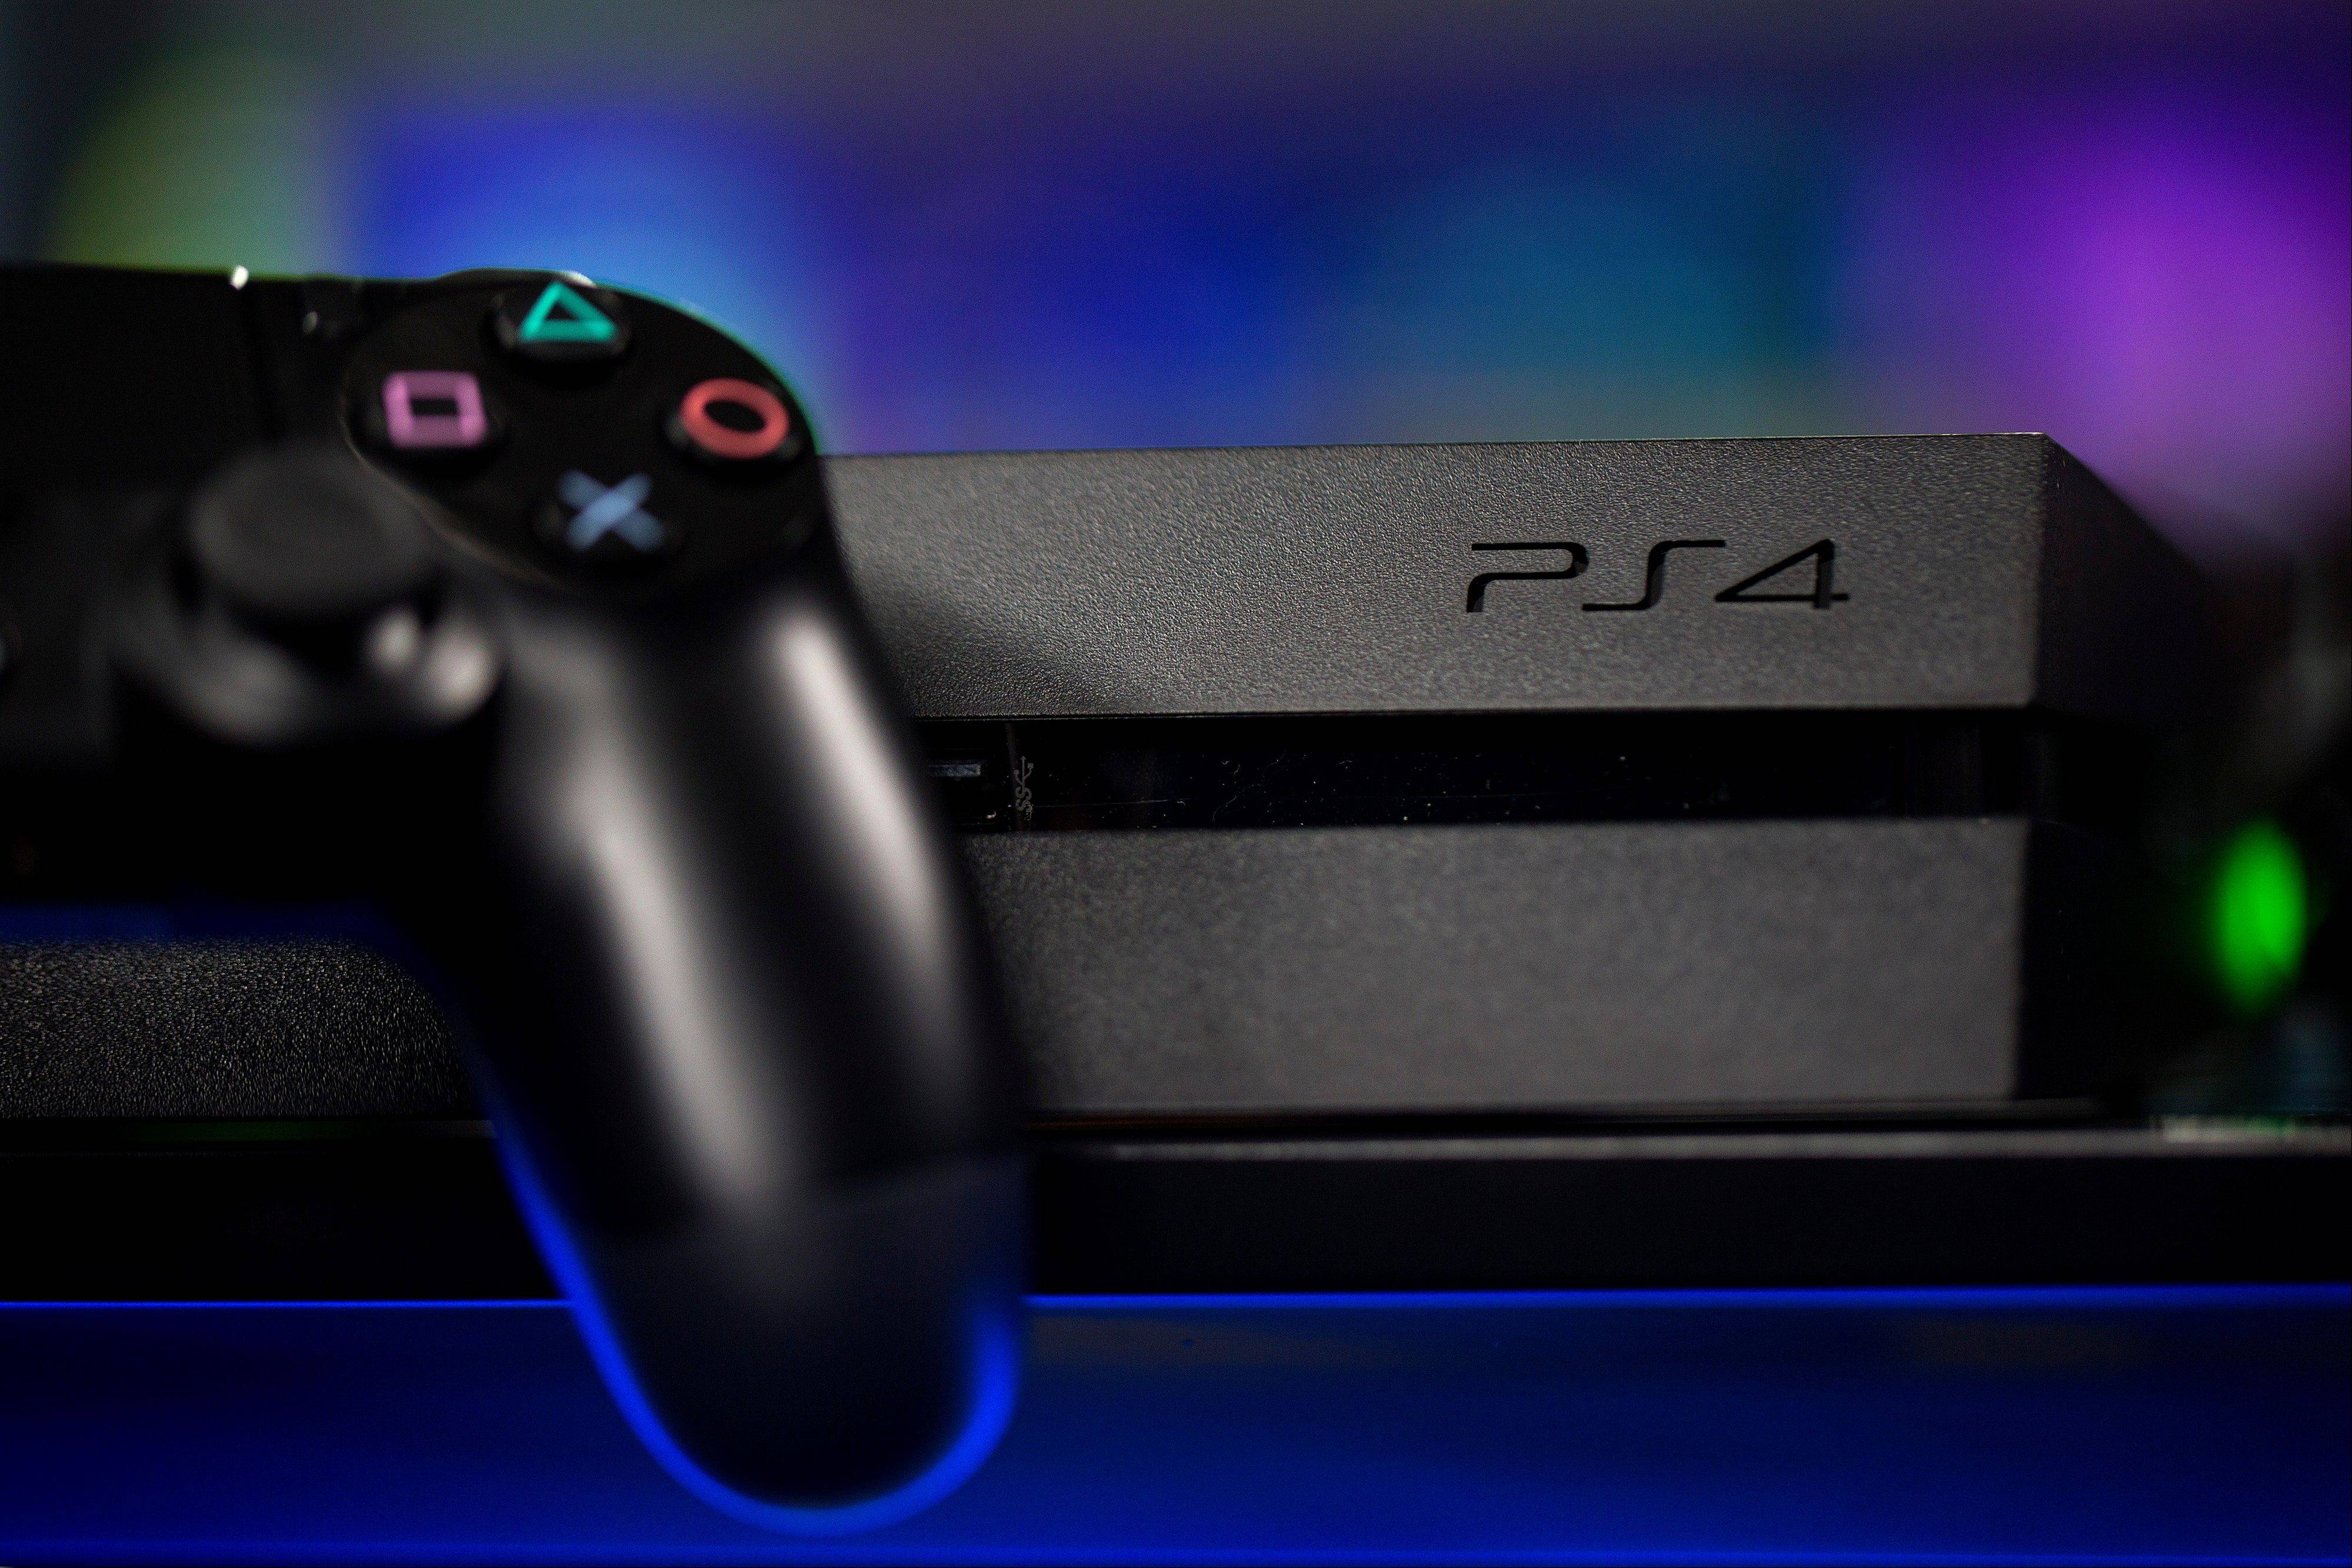 Sony is confident the Playstation 4 console can meet analysts' sales estimates of 3 million units by year-end, exploiting an early advantage over Microsoft Corp.'s Xbox One.